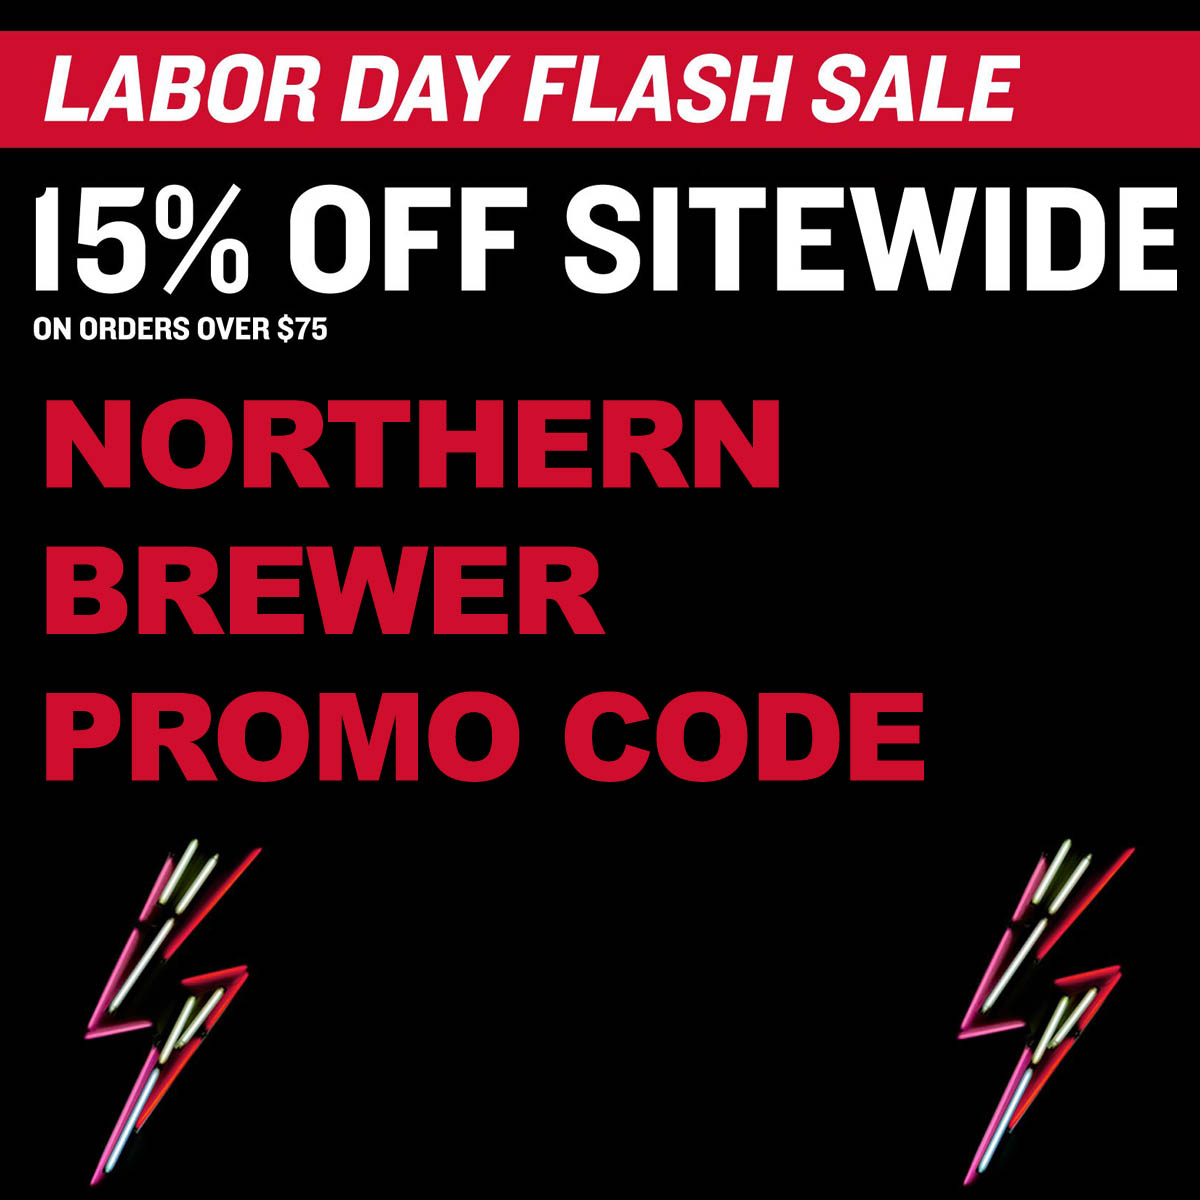 Northern Brewer Save 15% On Orders Over $75 With This Northern Brewer Promo Code Coupon Code